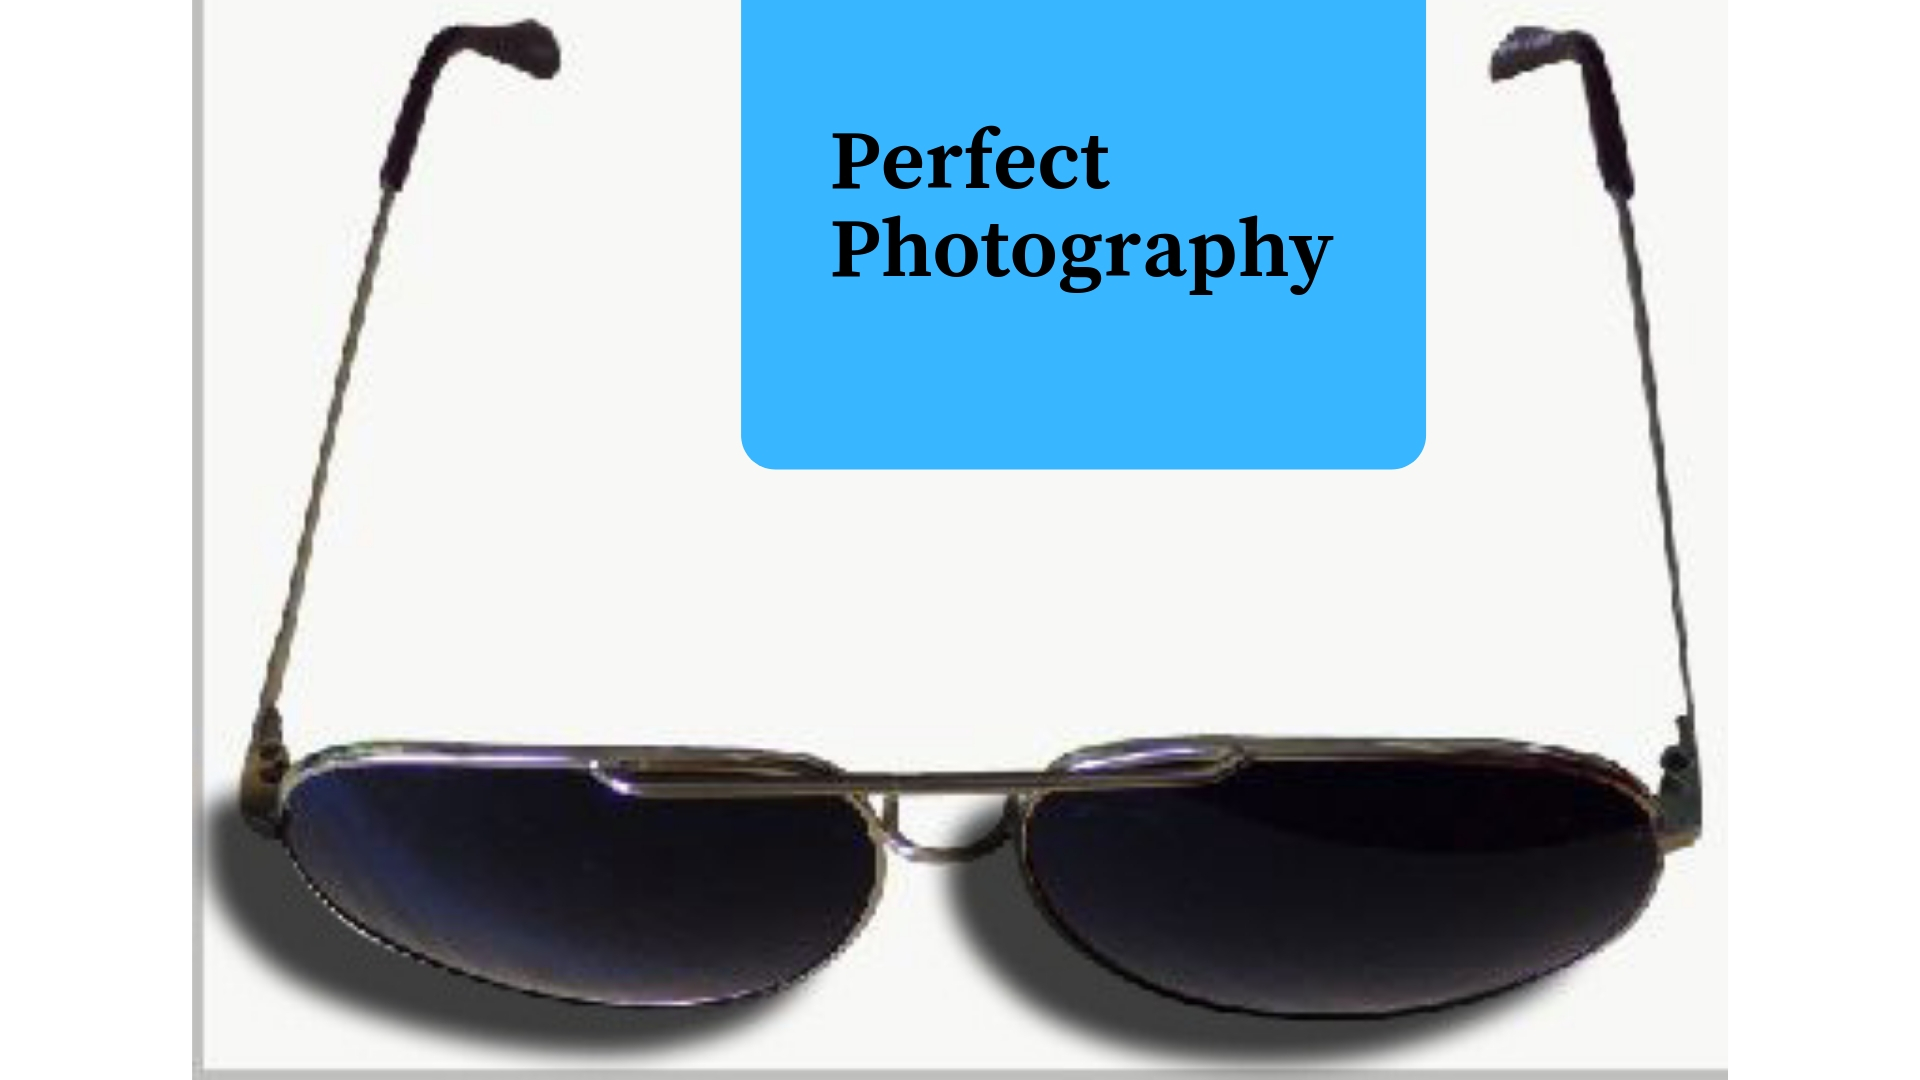 Myths of Product photography to grow ecommerce business